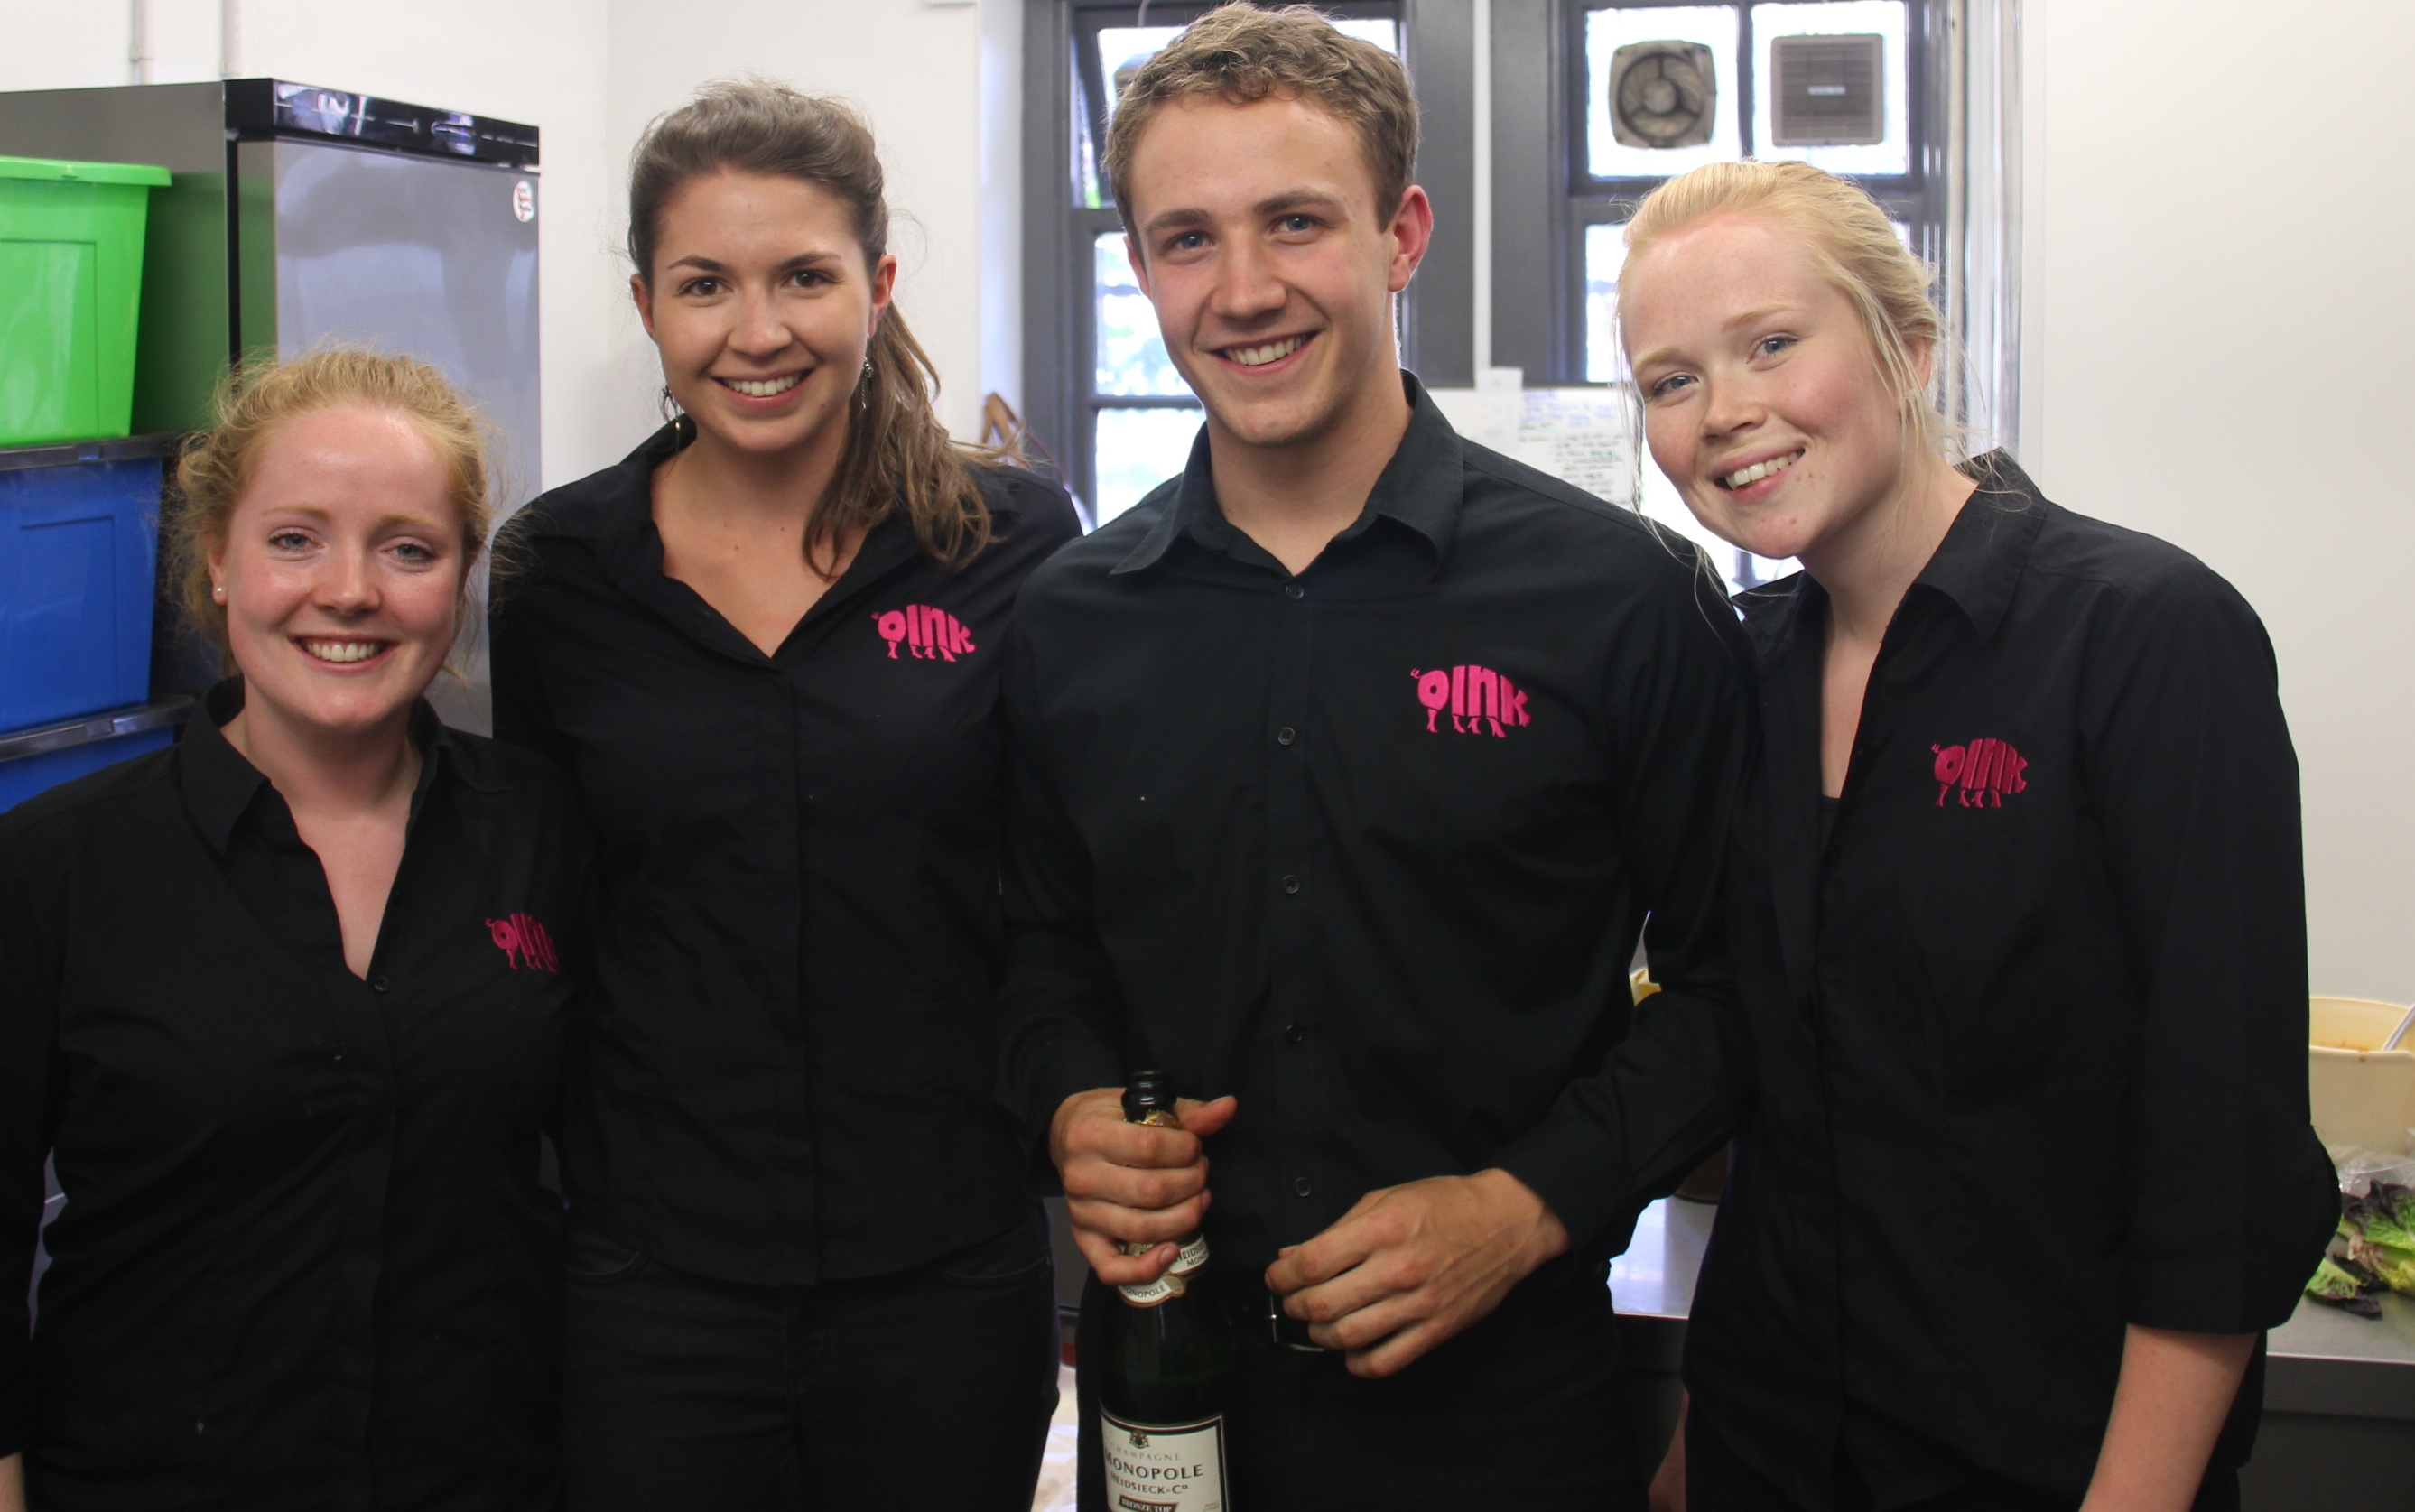 Our Oink team ready to serve a private function